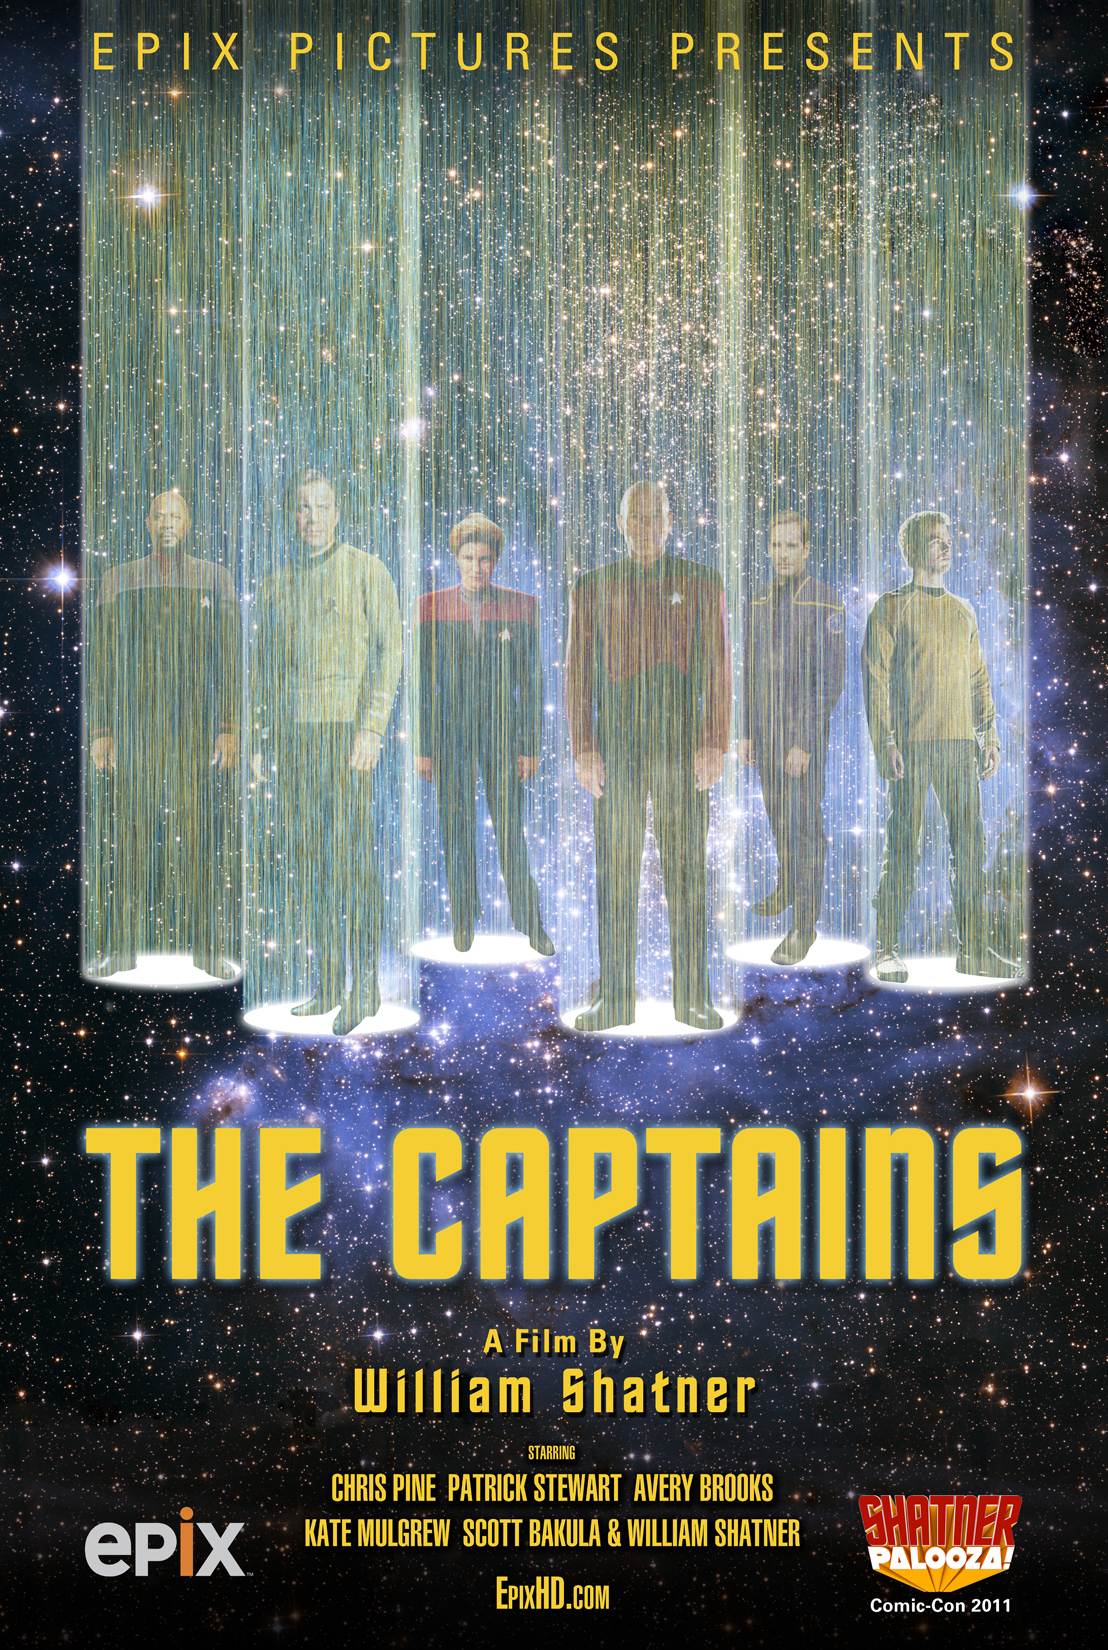 BILL CAPTAINS POSTER